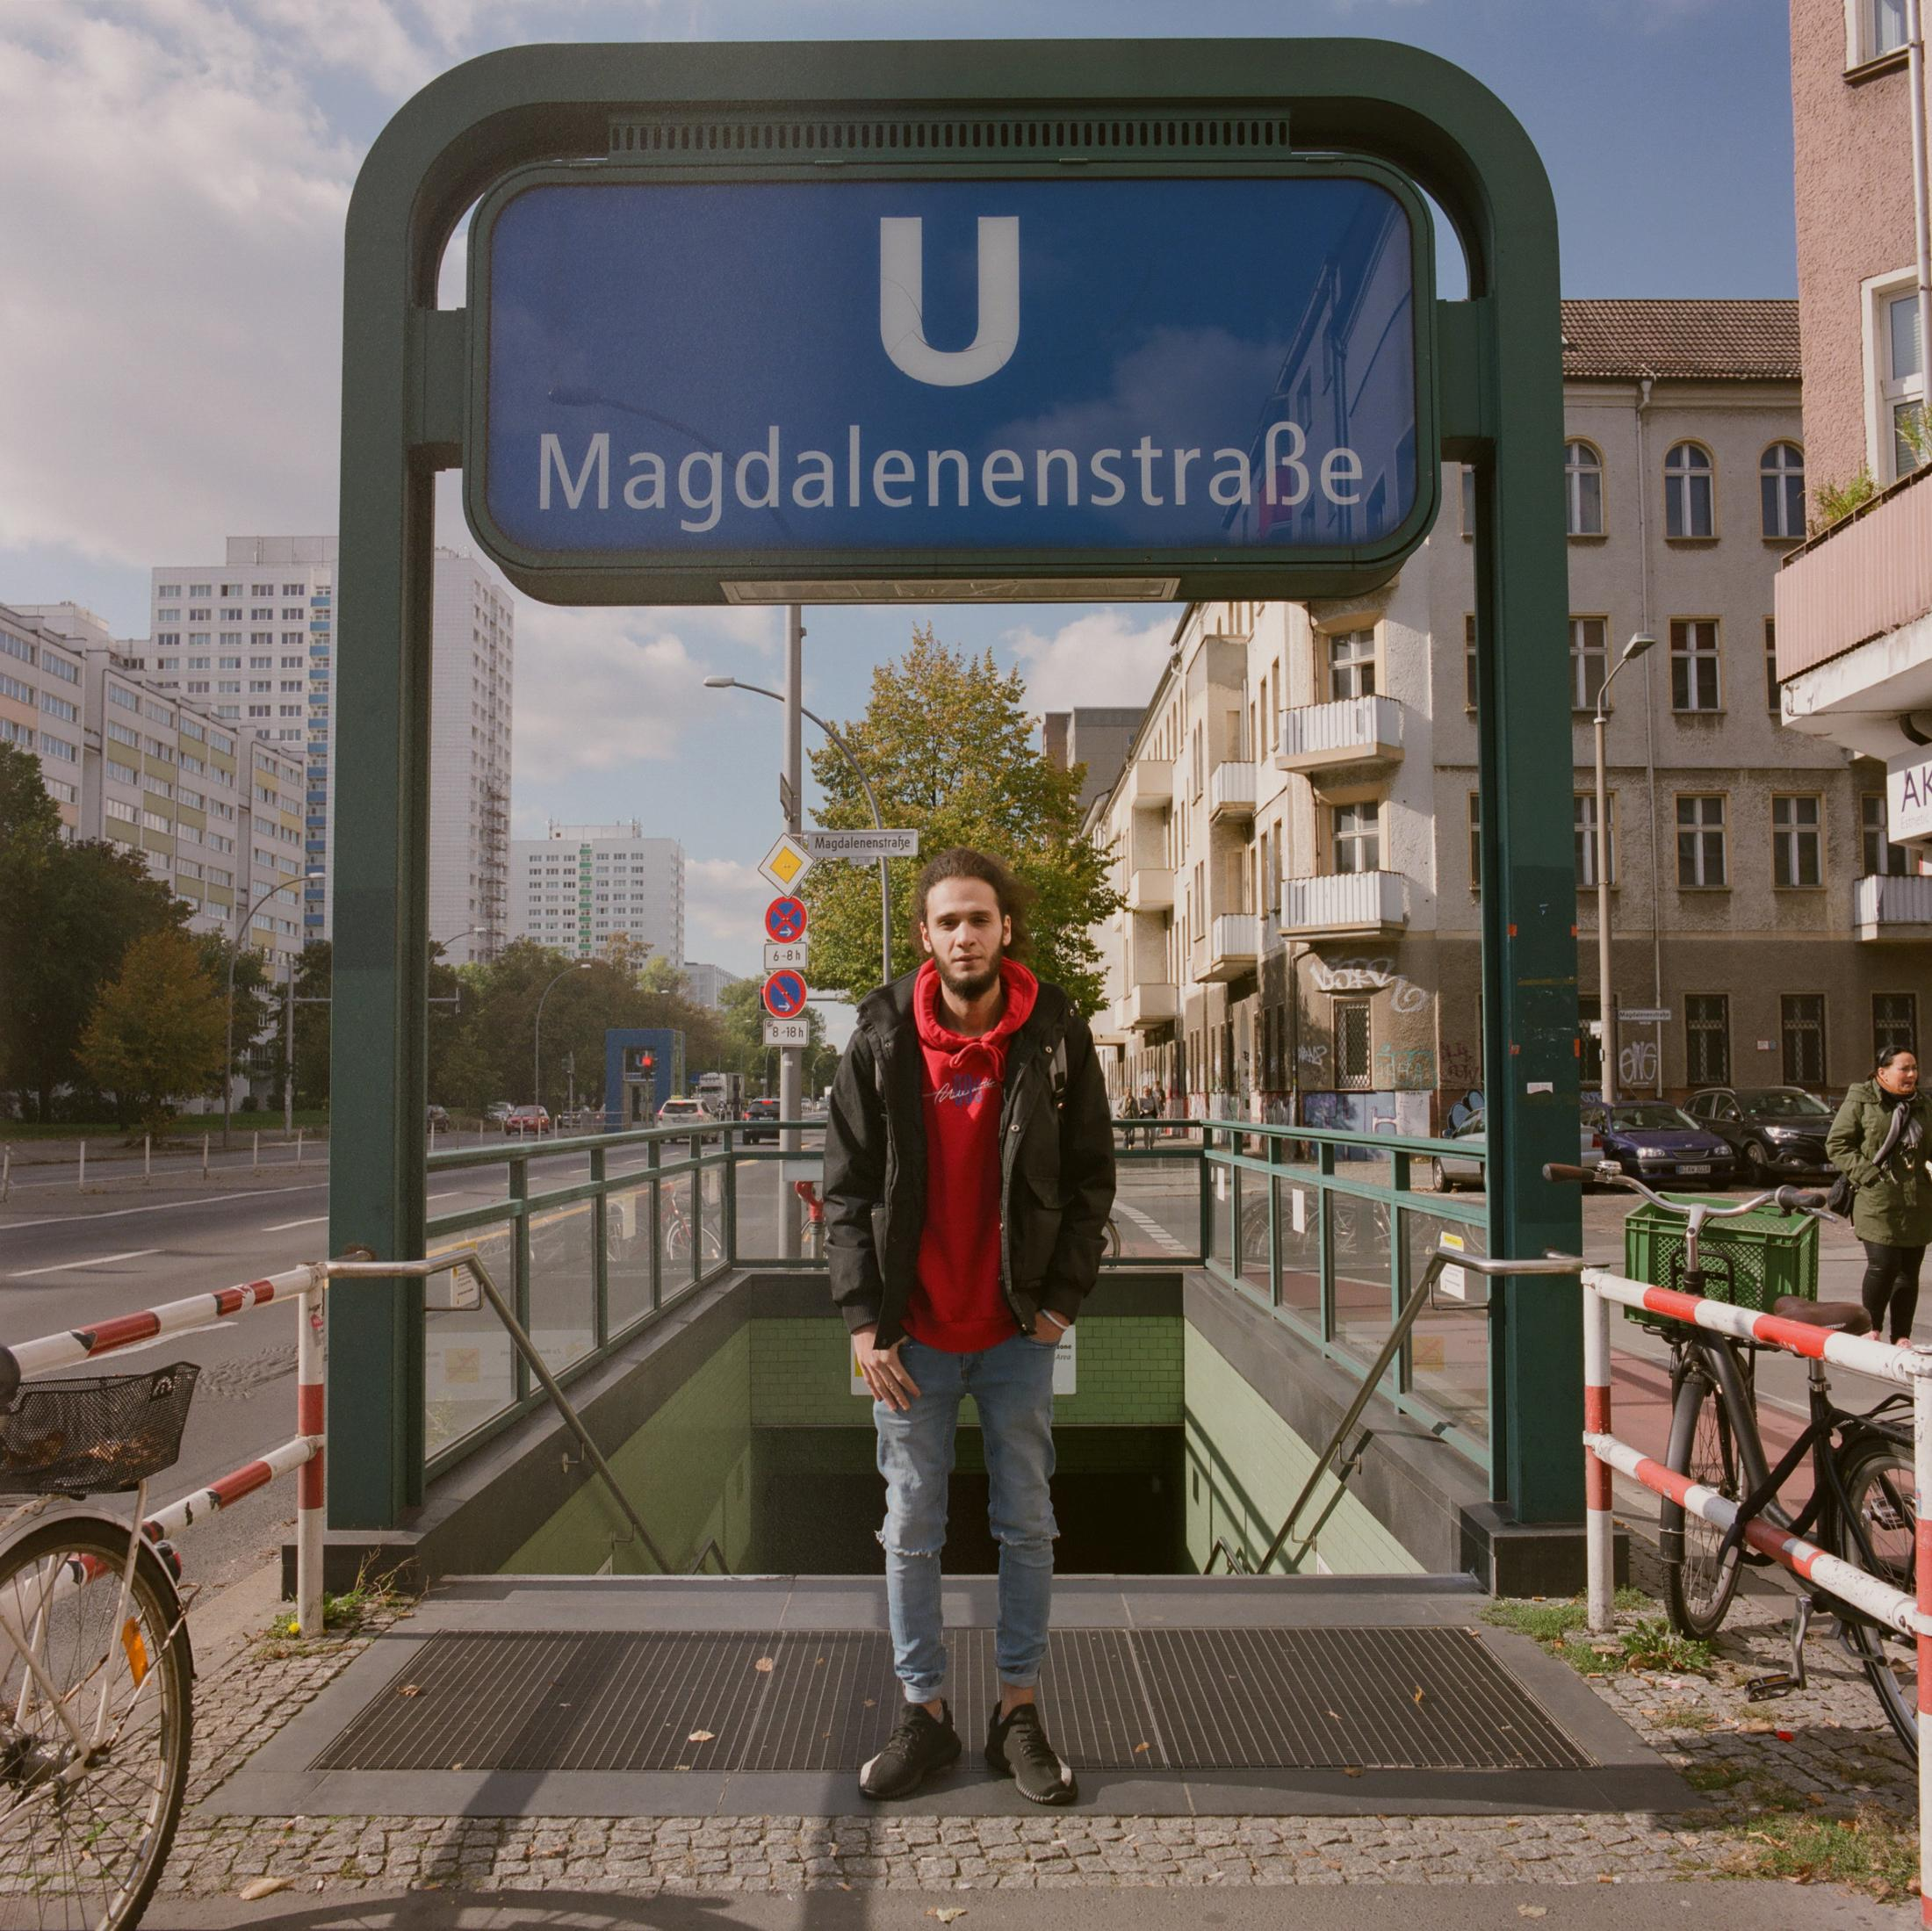 Art and Documentary Photography - Loading Alaa_at_the_entrance_of_the_U-Bahn_Magdalenenstra__e__Berlin__2.jpg